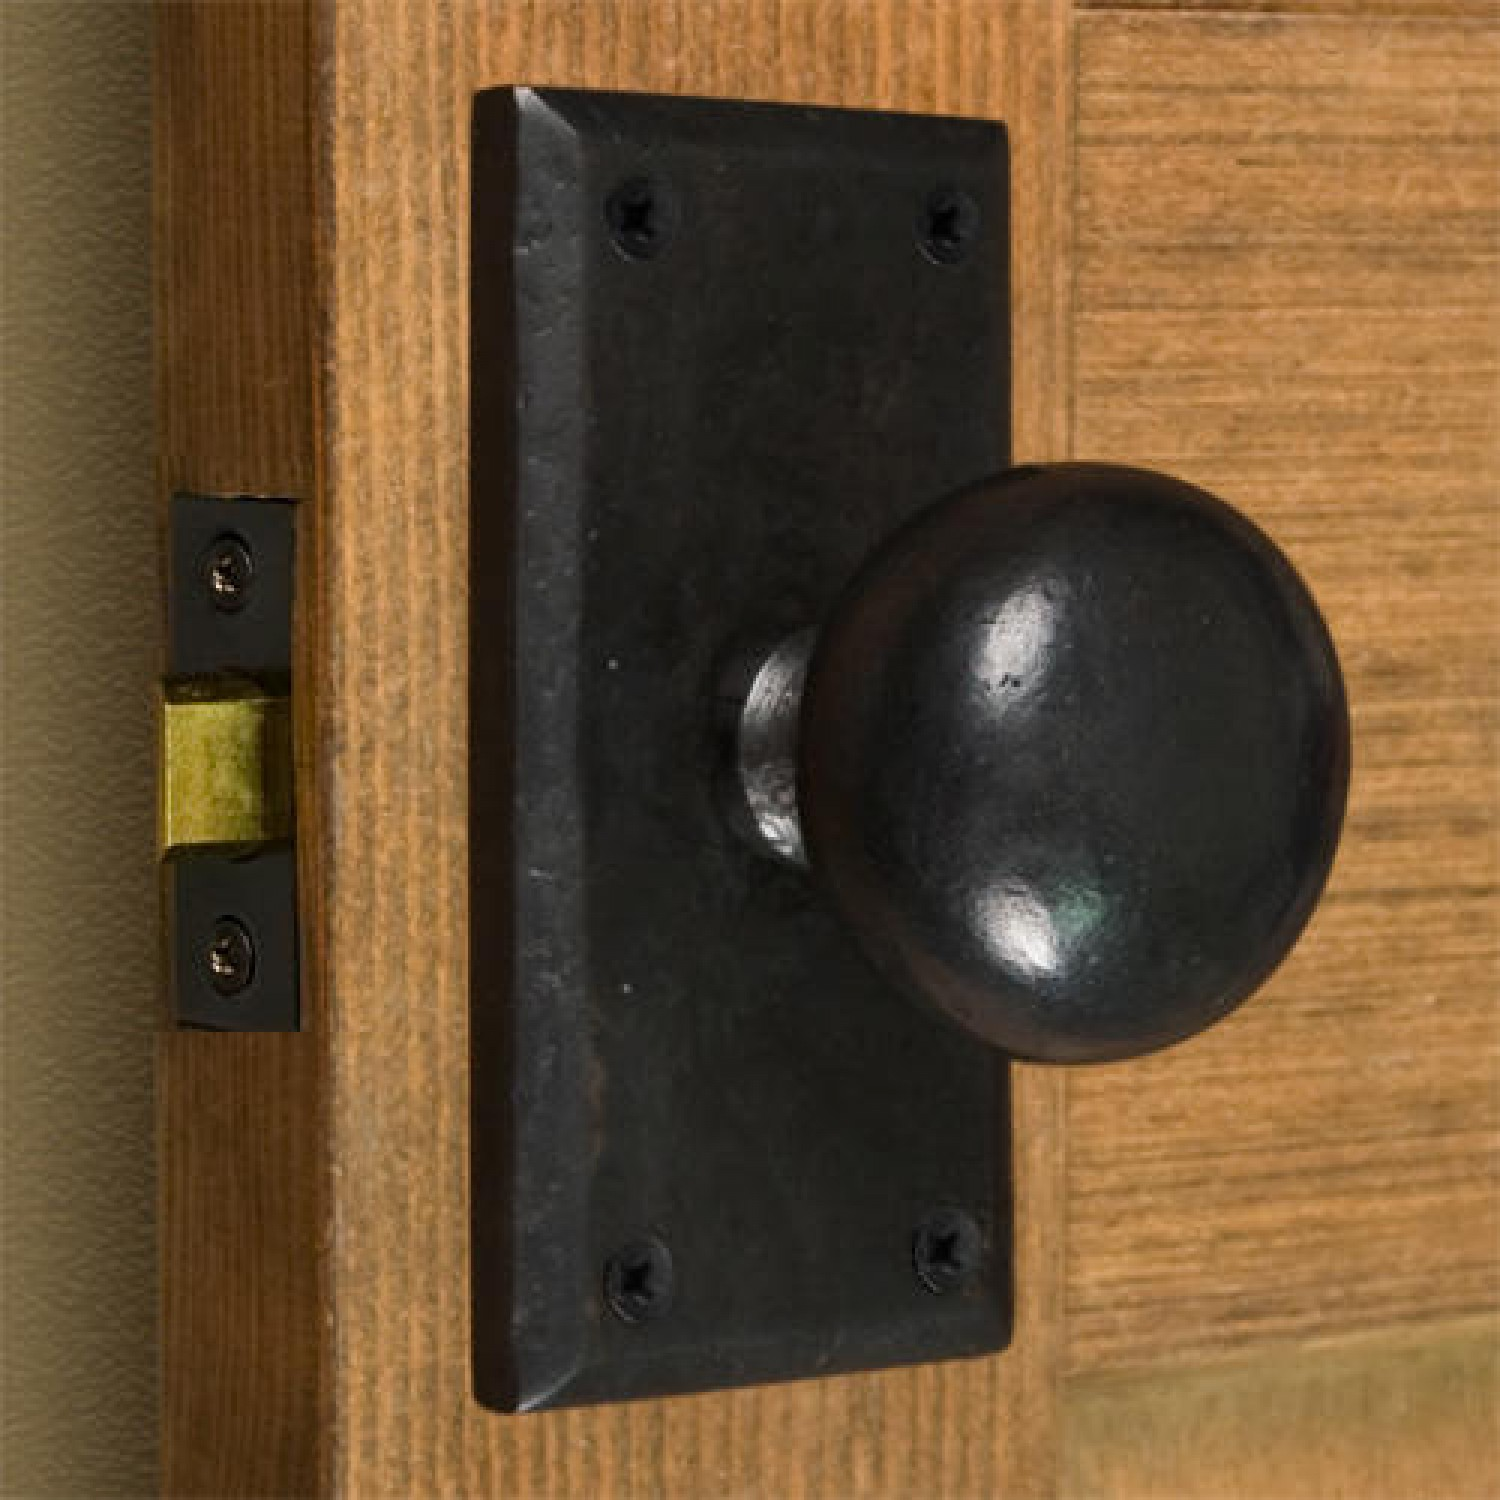 doors and knobs hardware photo - 6